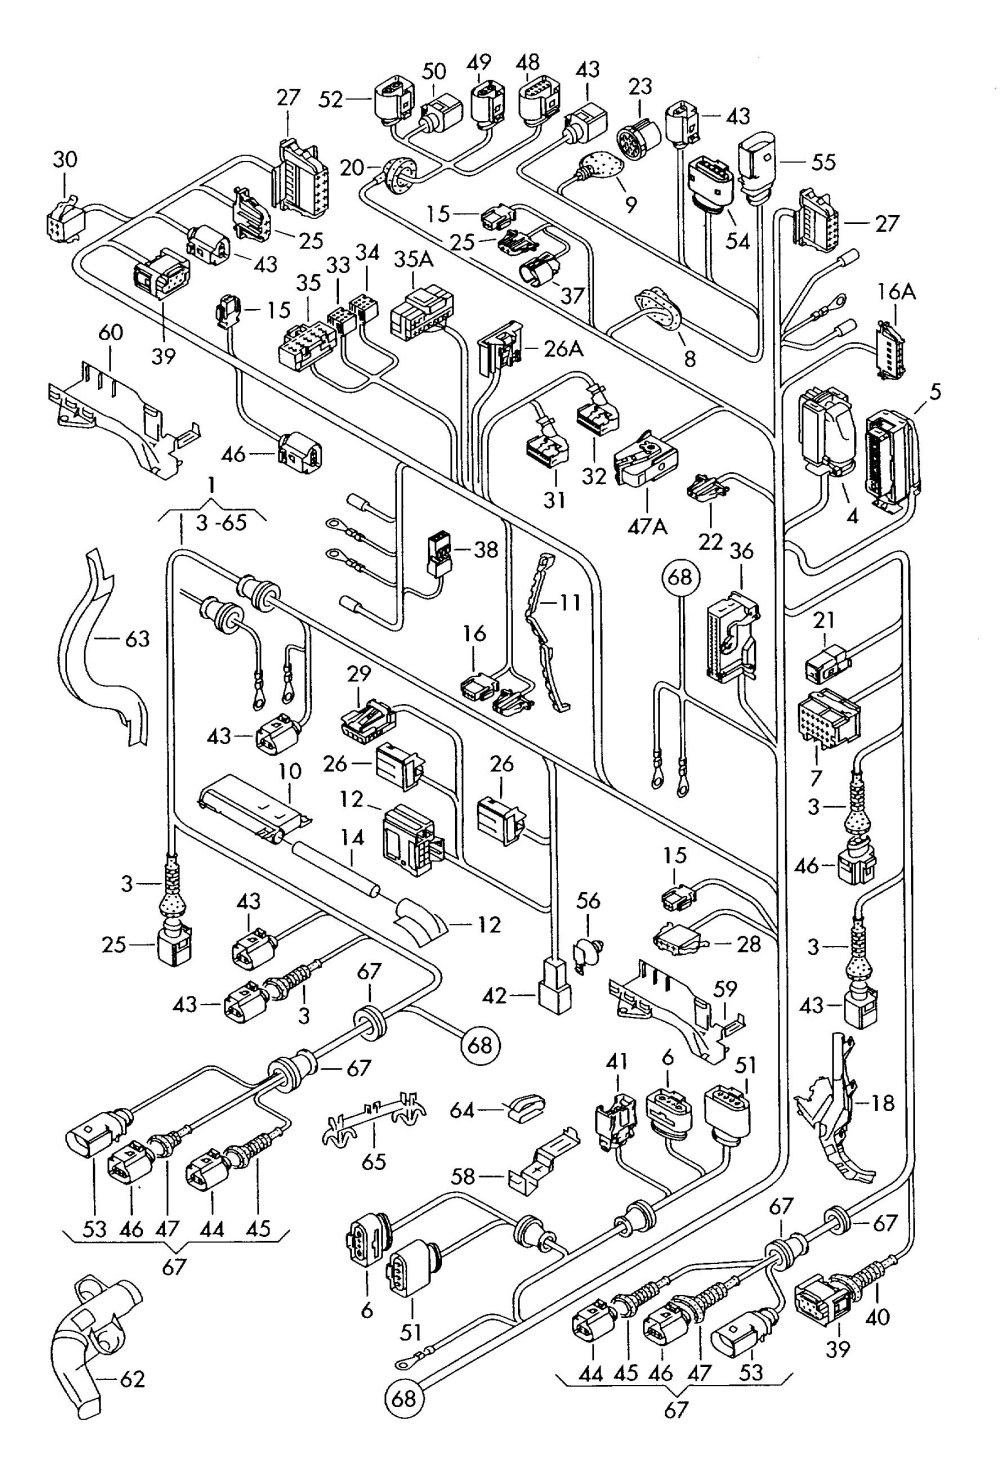 medium resolution of cable wire harness circuit diagram 3 wire bulb holder wiring harness parts wig wag wire harness